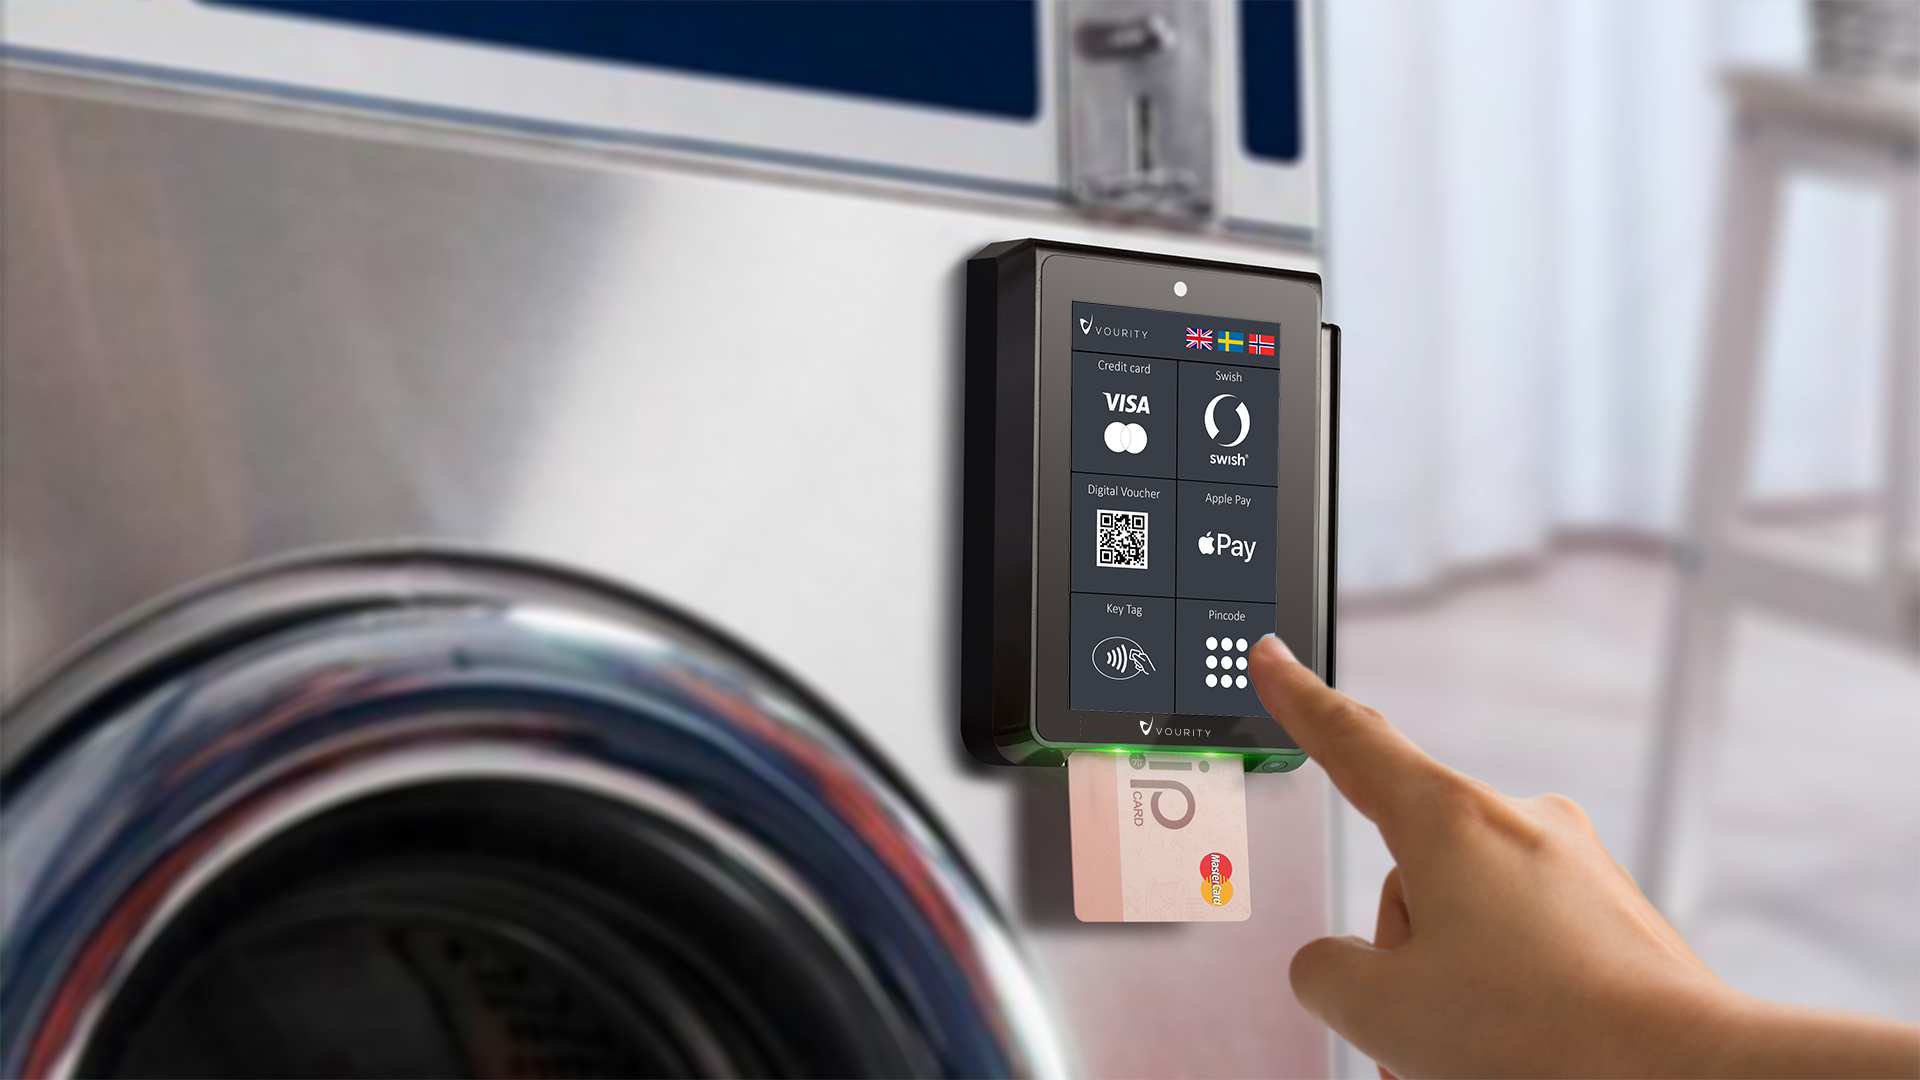 Vourity POS 3 On Laundry machine